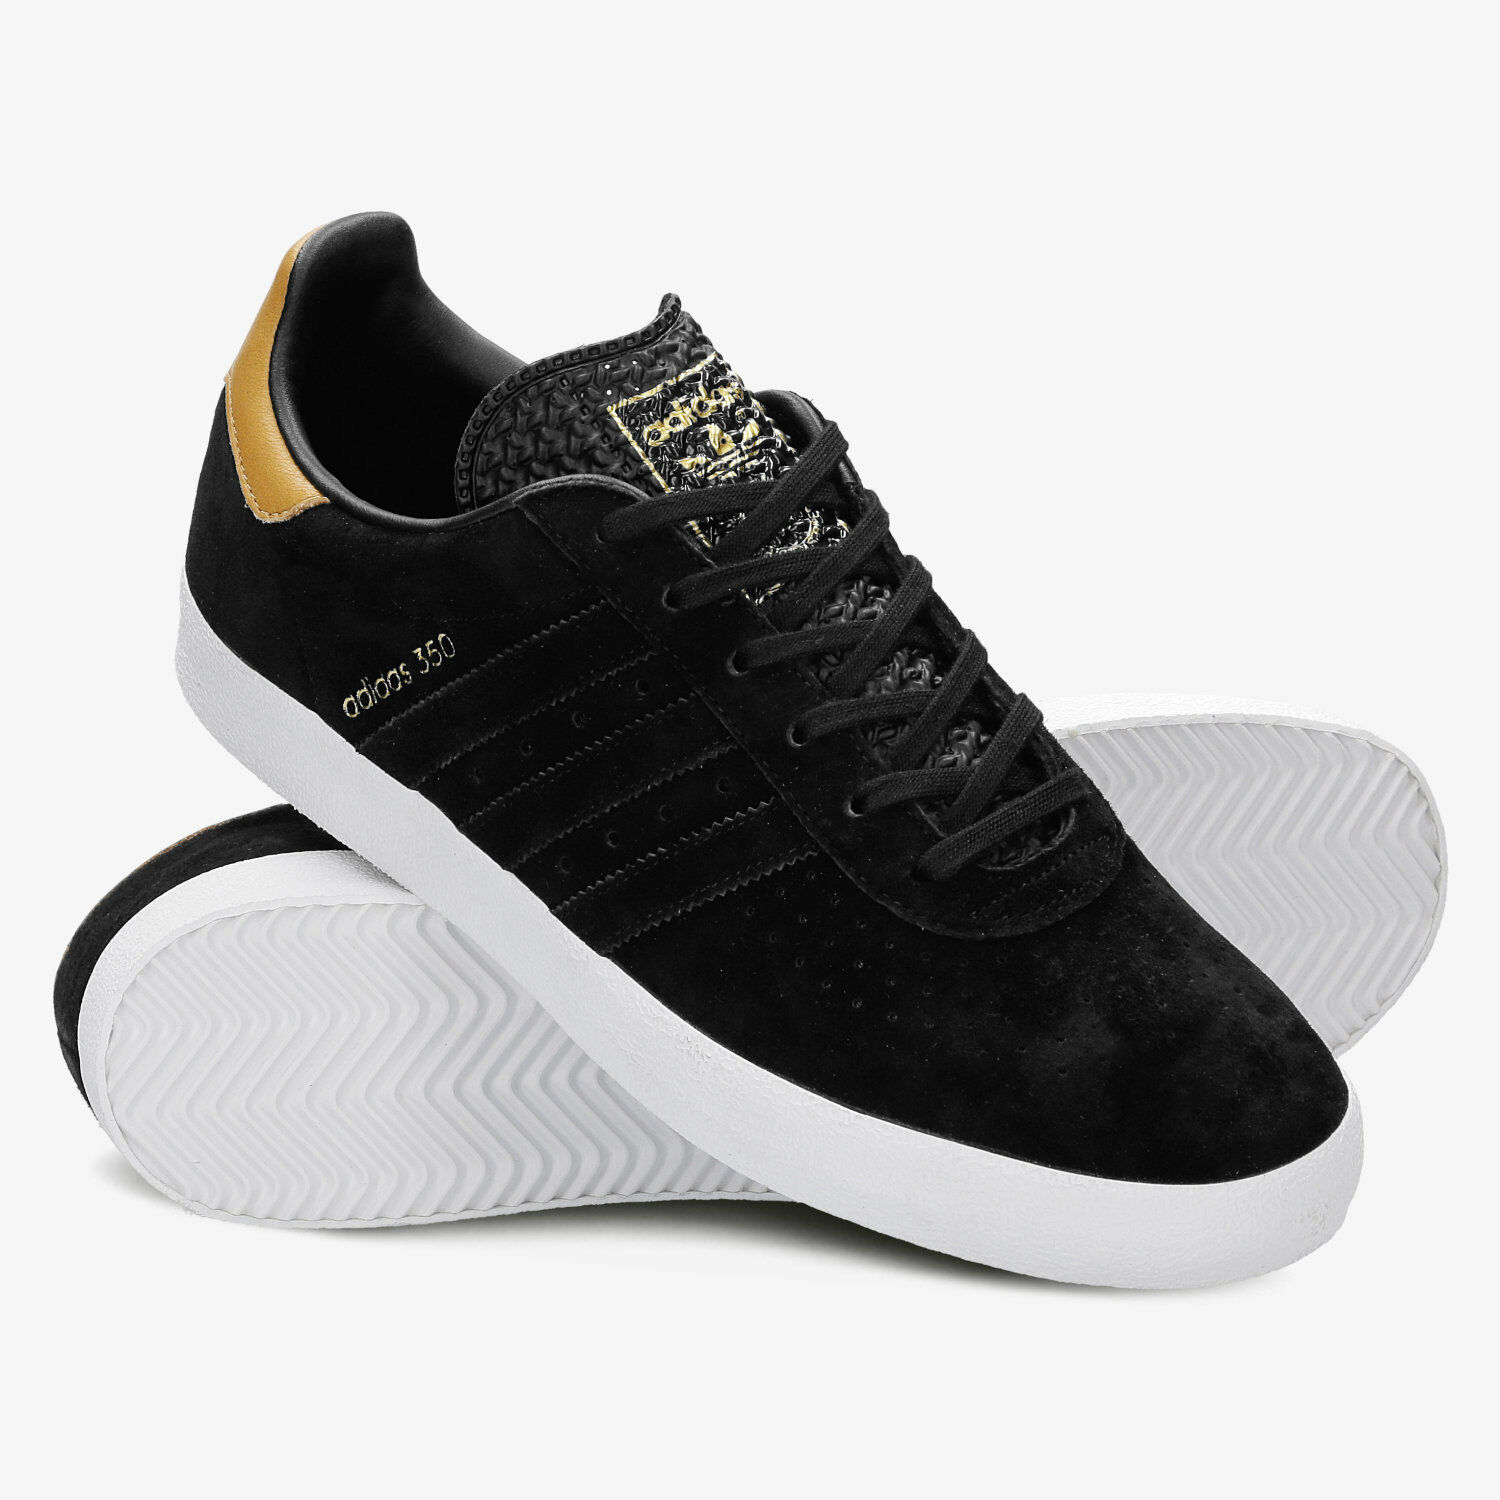 *BRAND Sneakers NEW* adidas Originals 350 Black Suede Sneakers *BRAND (BB5287), Size 13 US f65d4e